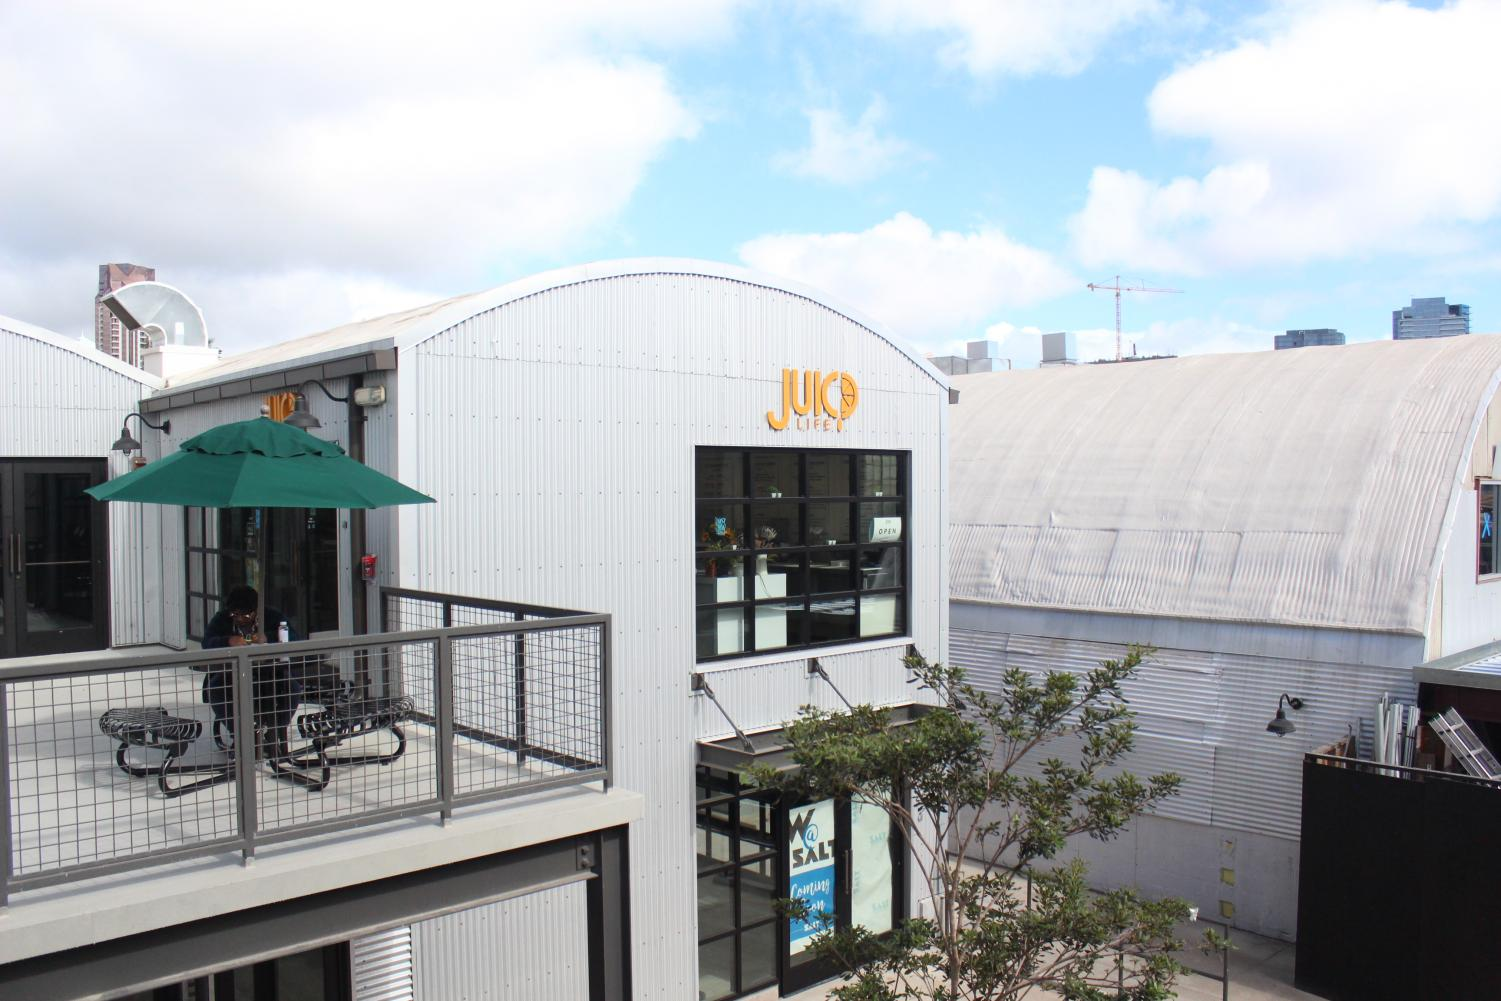 Juicd Life is among the many new eateries and shops located in the Kakaako district.